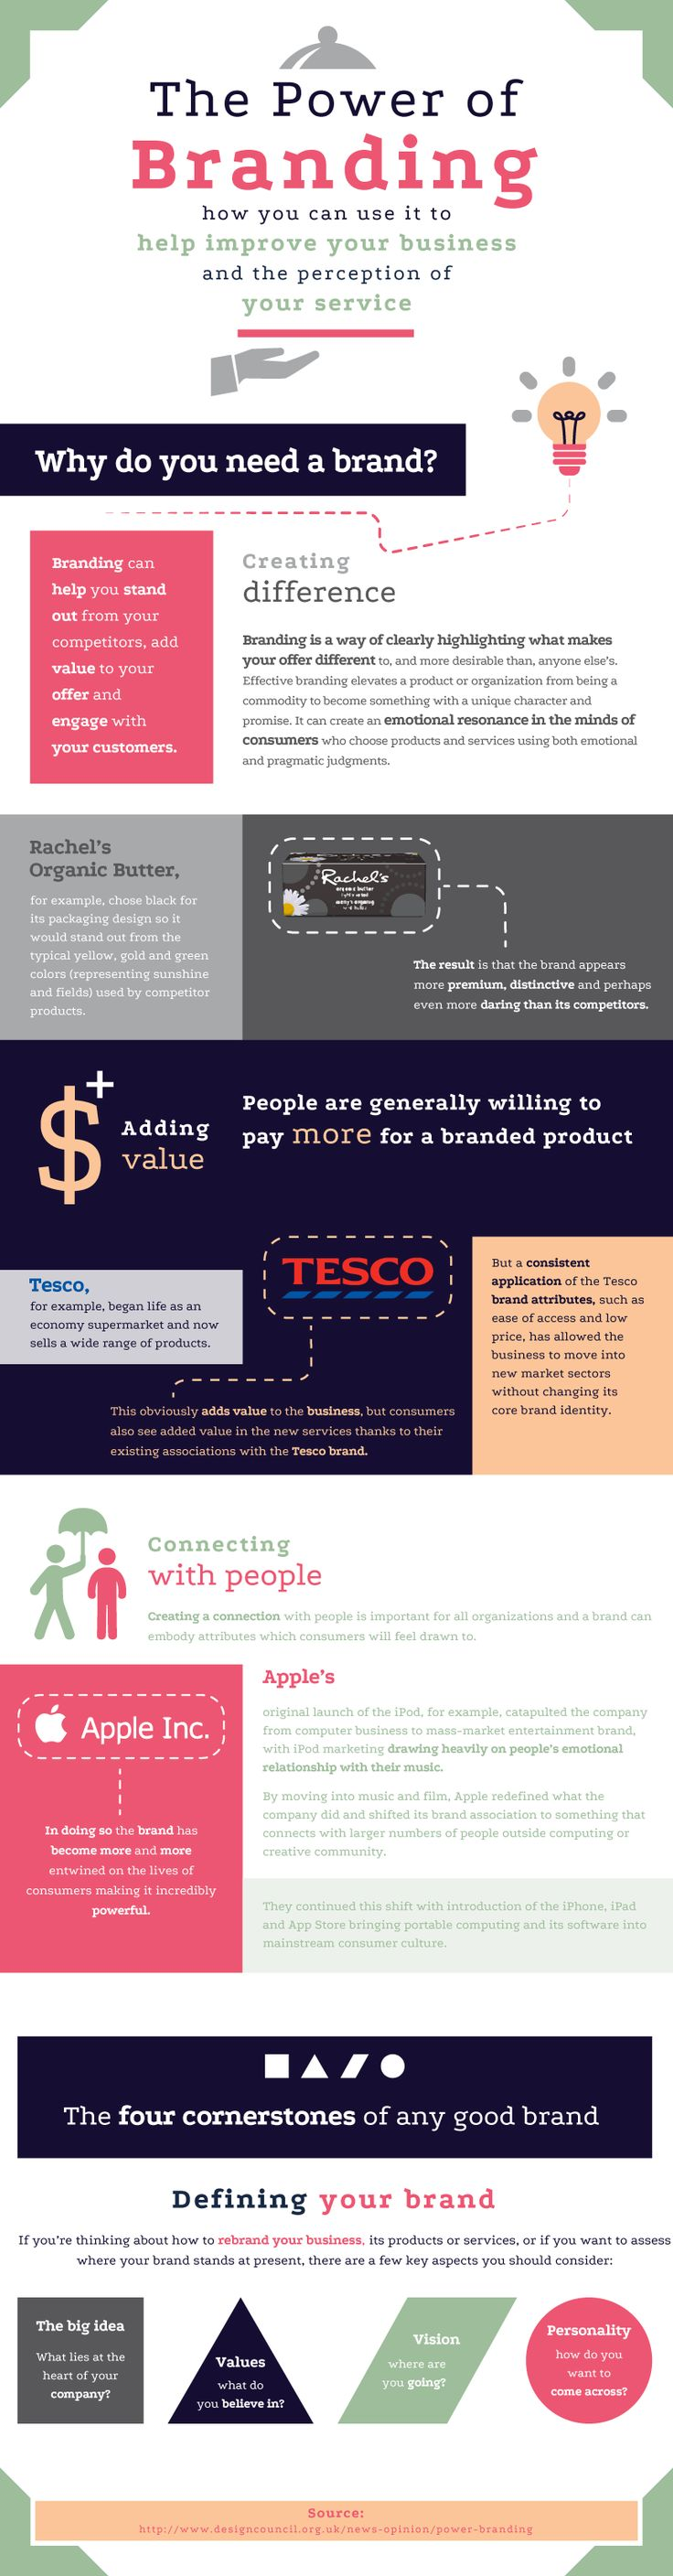 The Power of Branding [Infographic] AND Take this Free Full Lenght Video Training on HOW to Start an Online Business